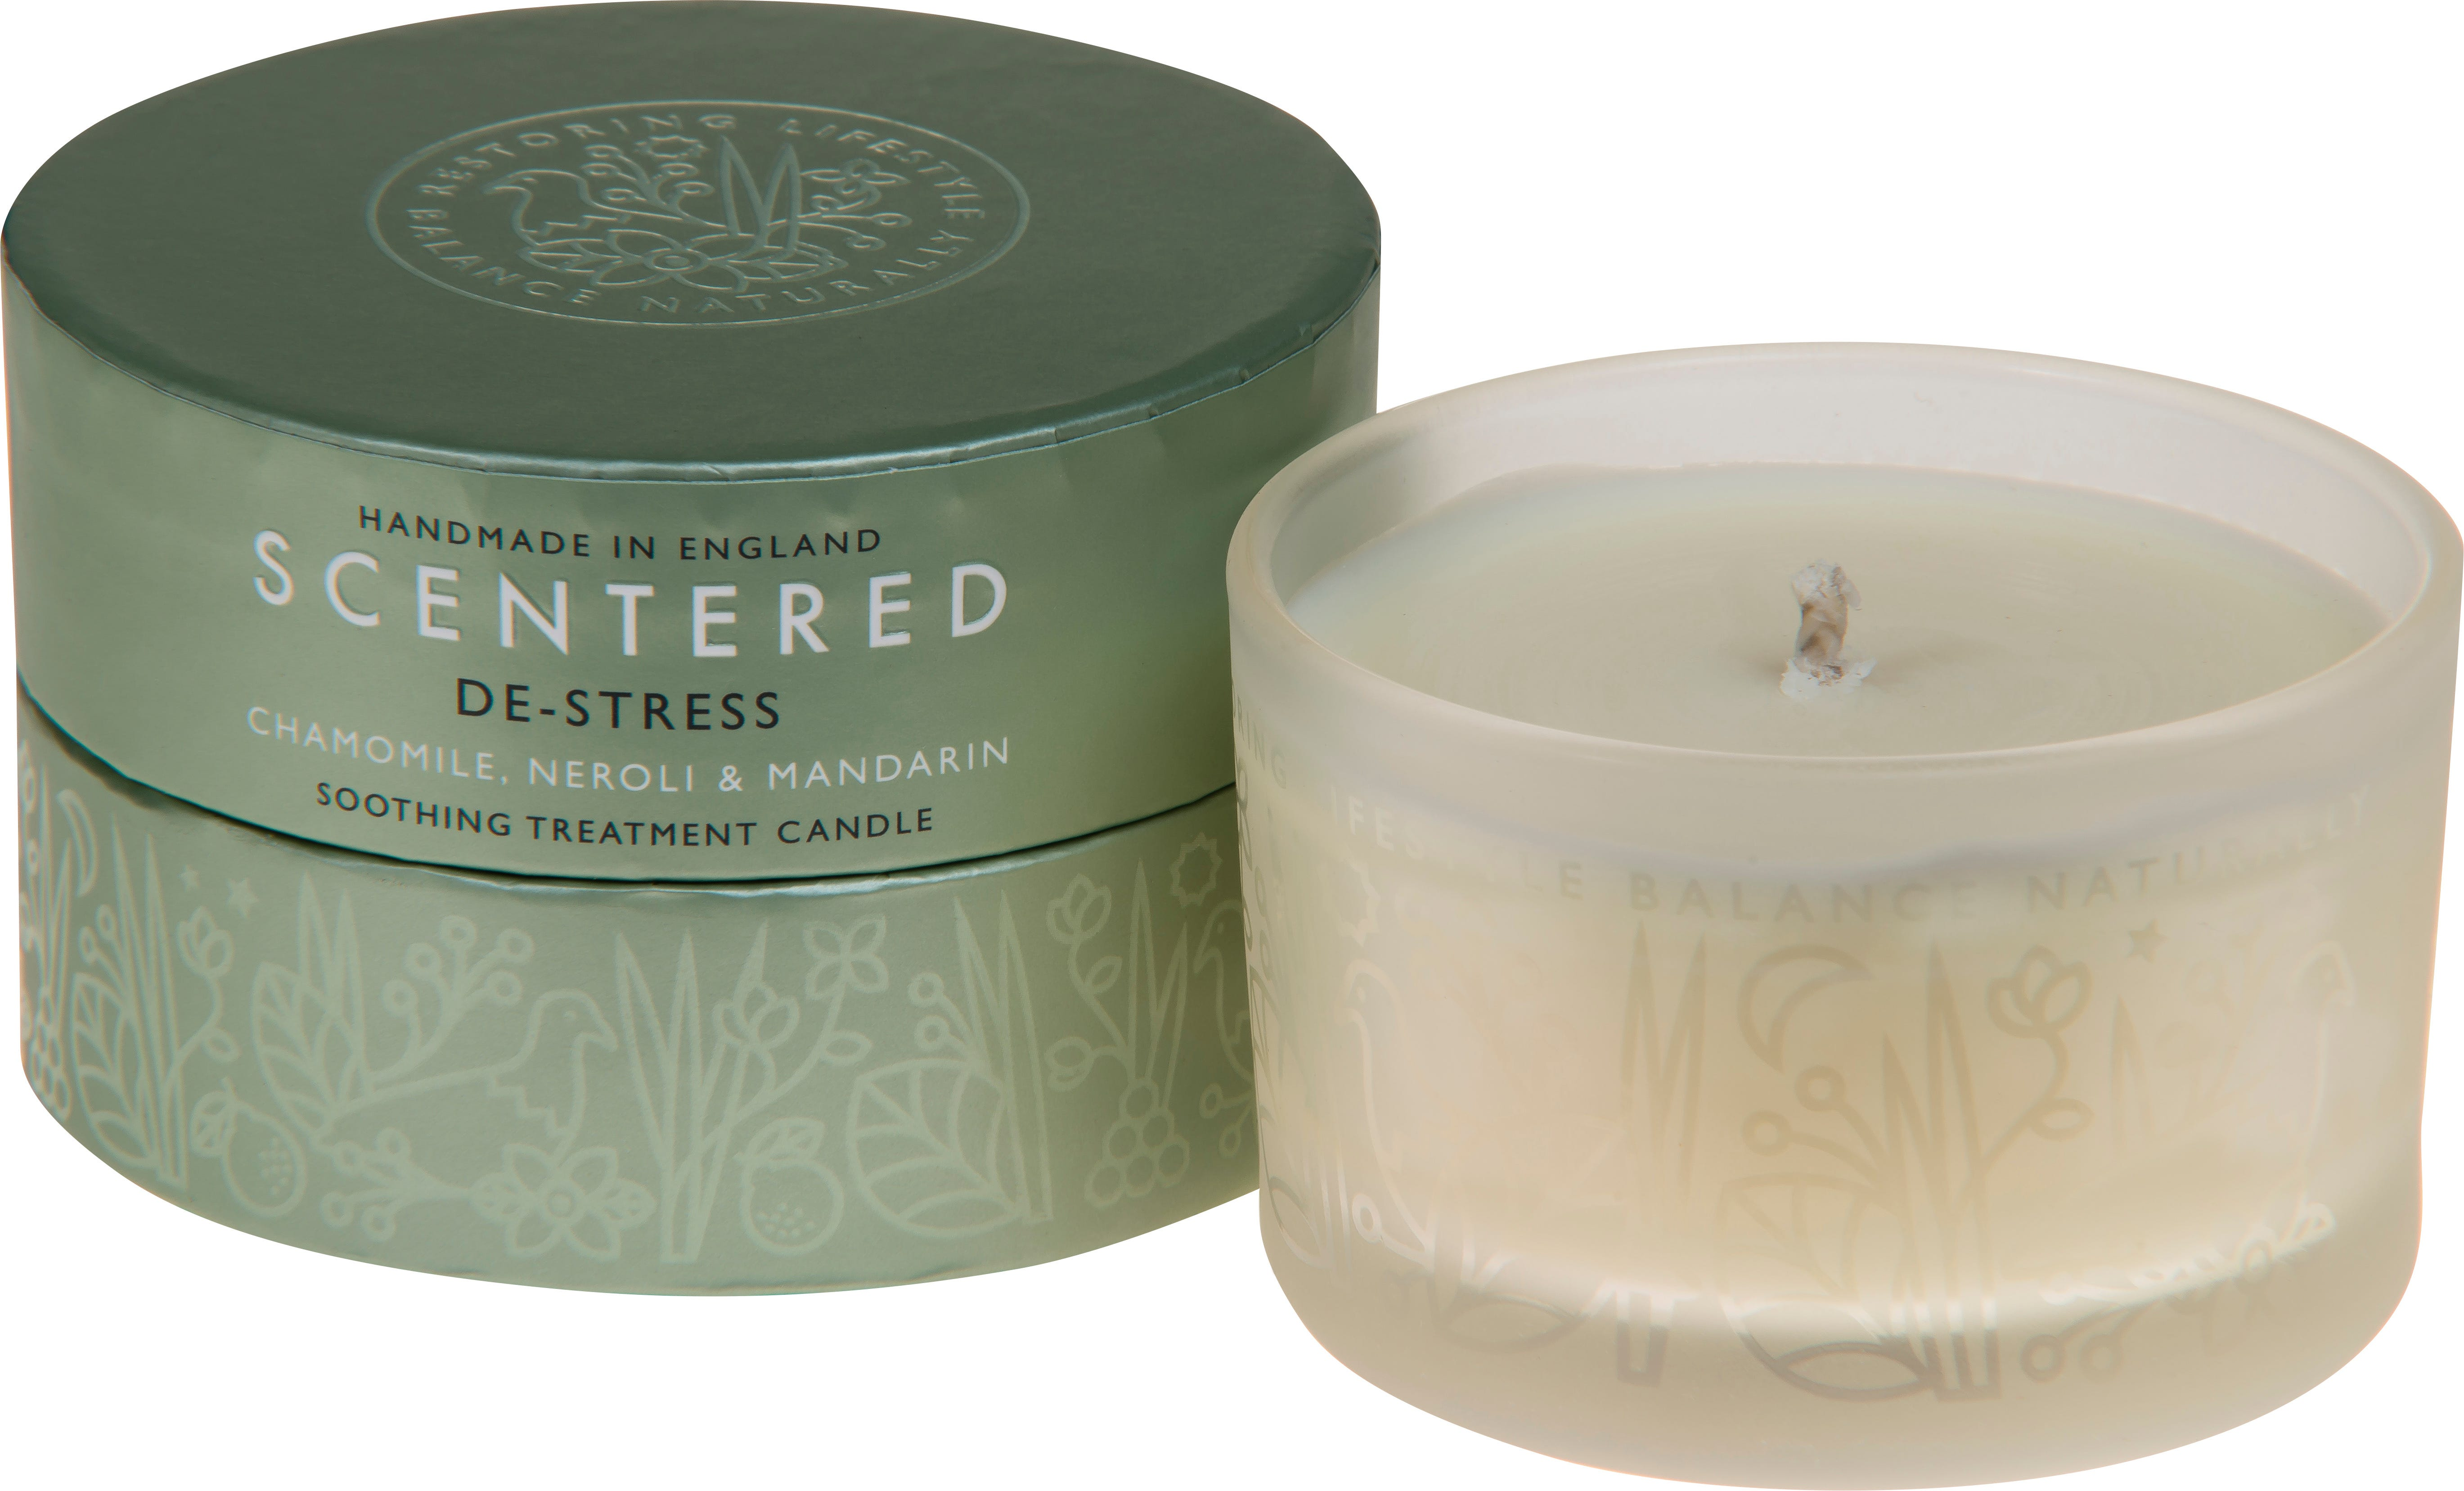 De-Stress Travel Therapy Candle